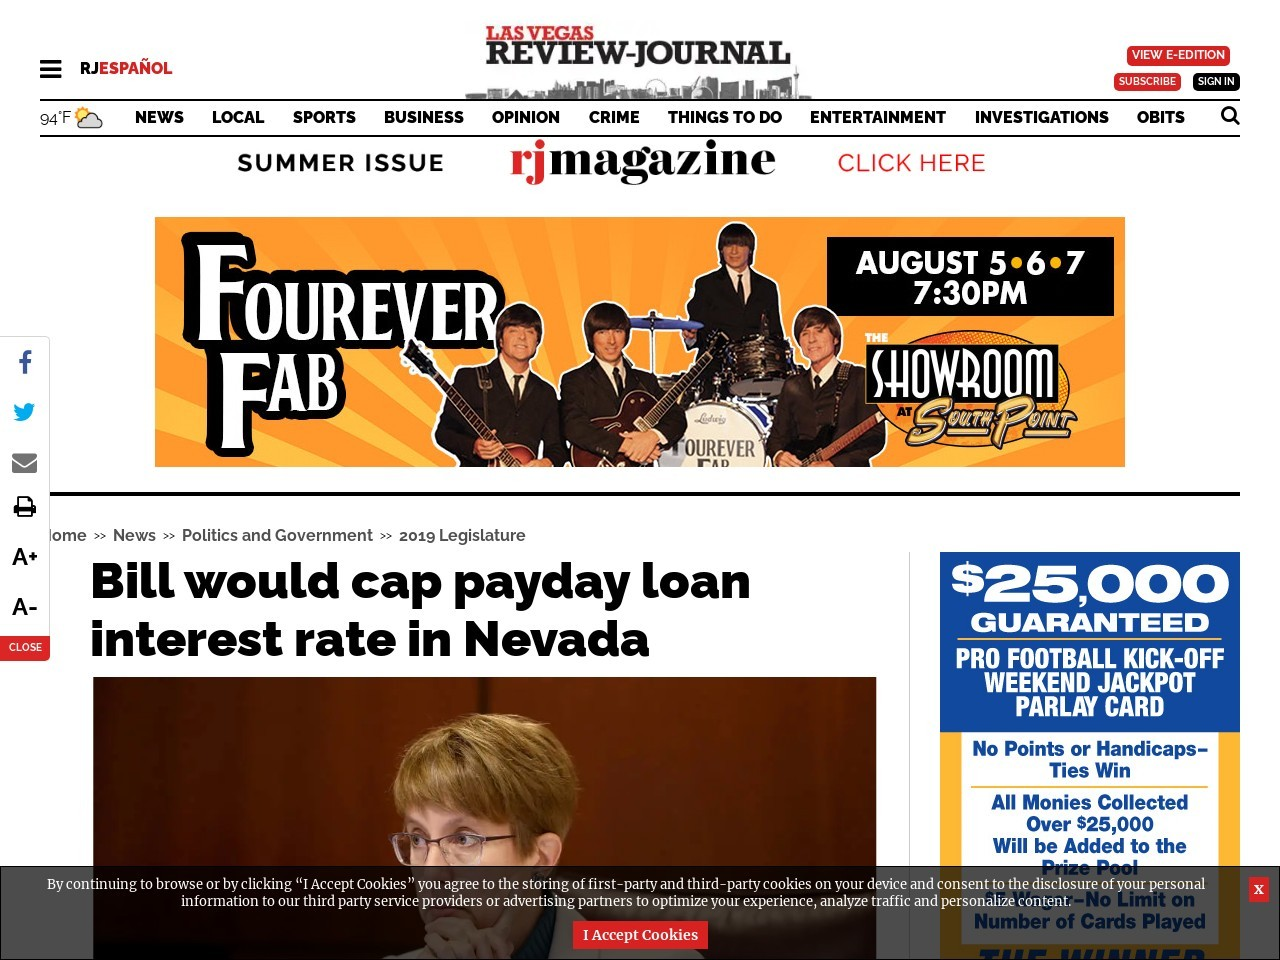 Bill would cap payday loan interest rate in Nevada